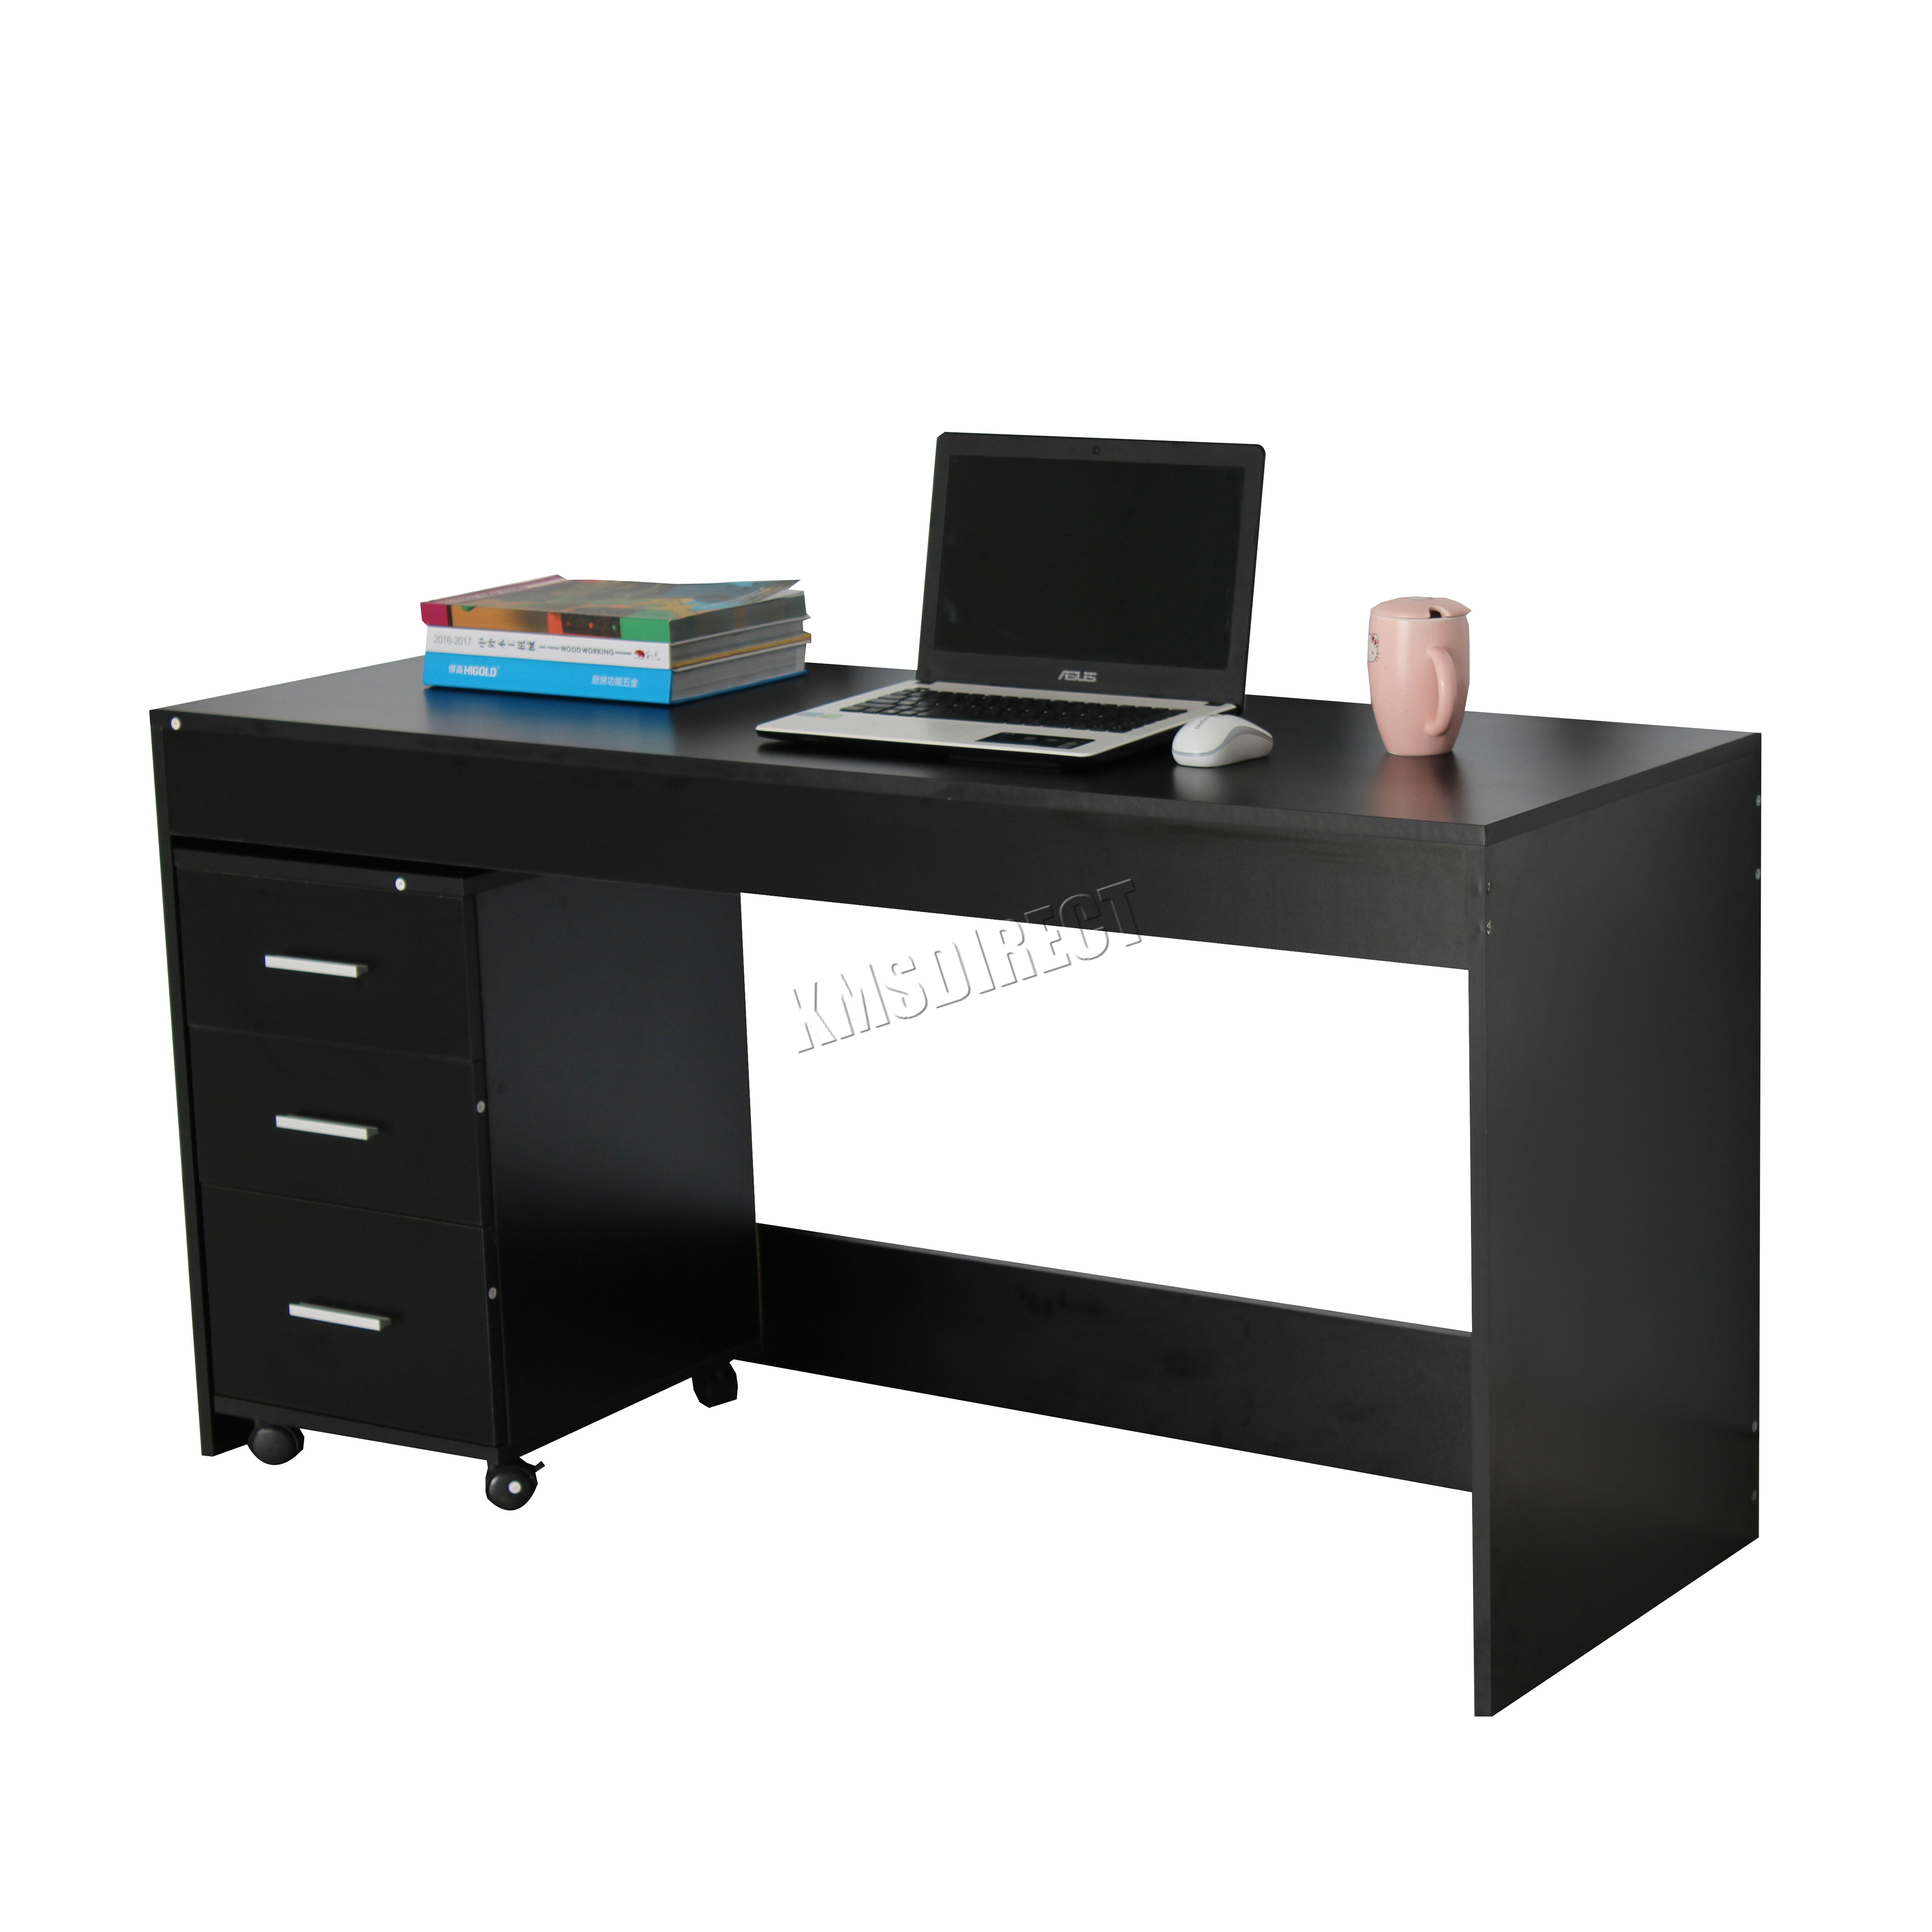 Foxhunter computer desk pc table with 3 drawers home for Better homes and gardens furniture customer service phone number